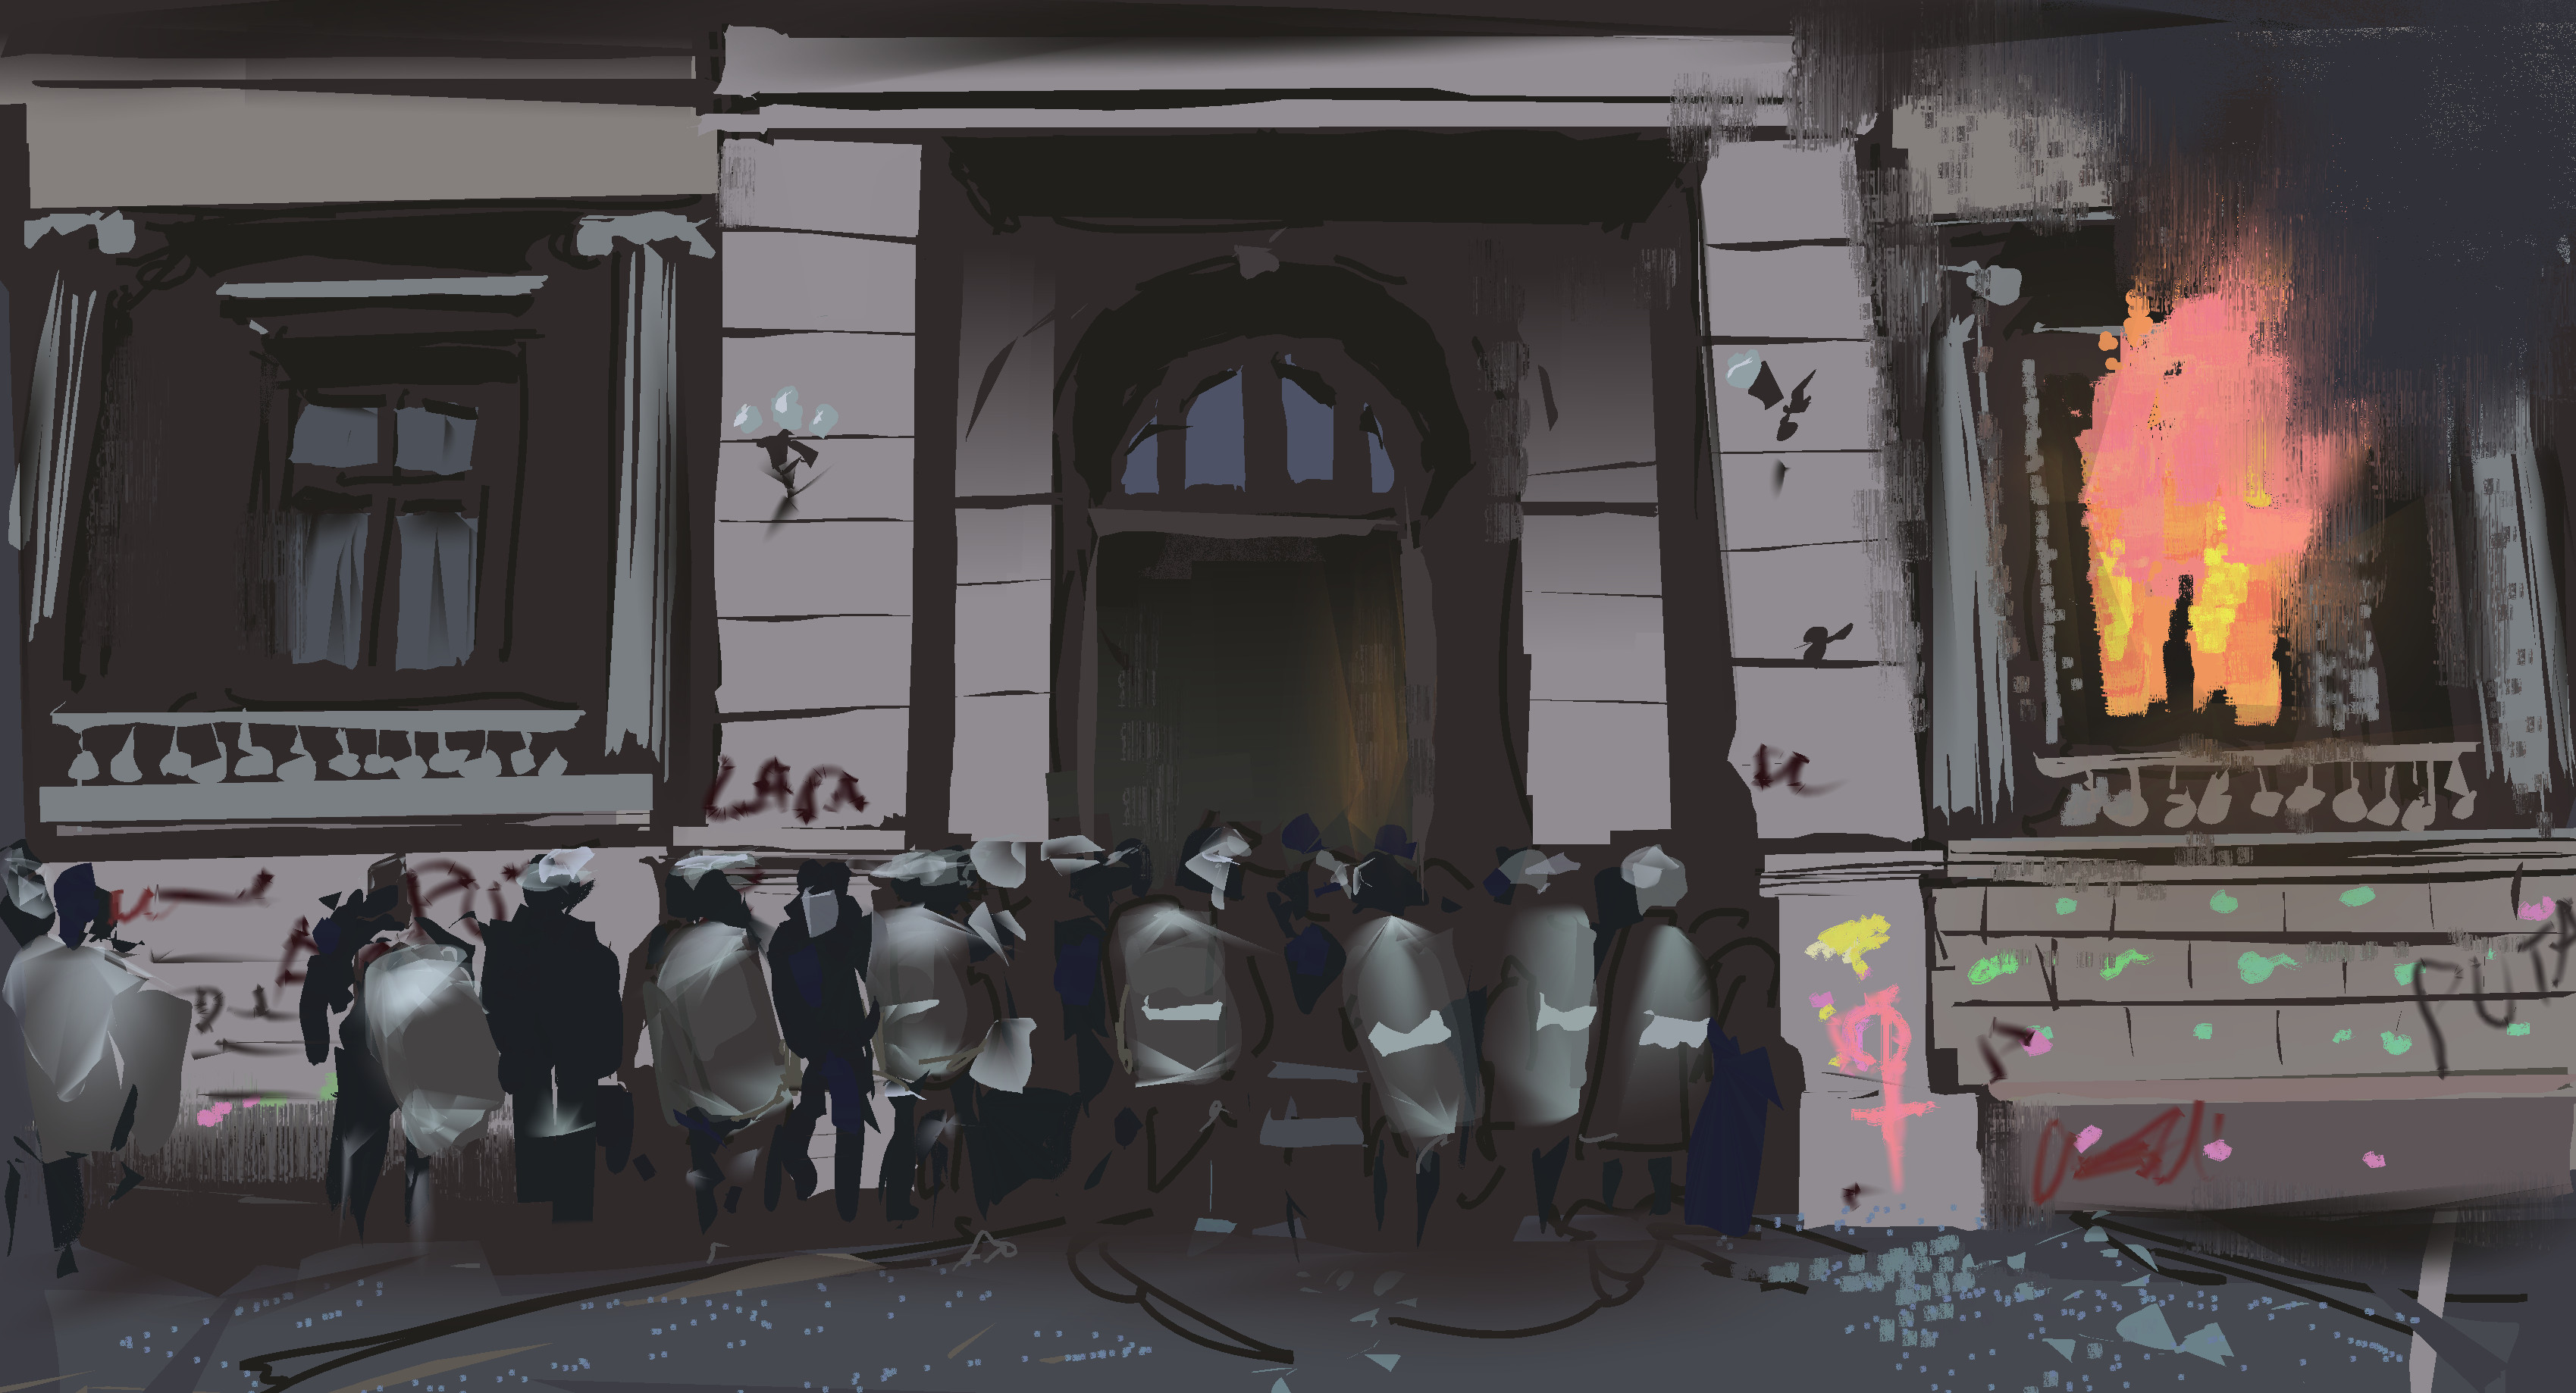 Guatemala protest. Painted from reference.